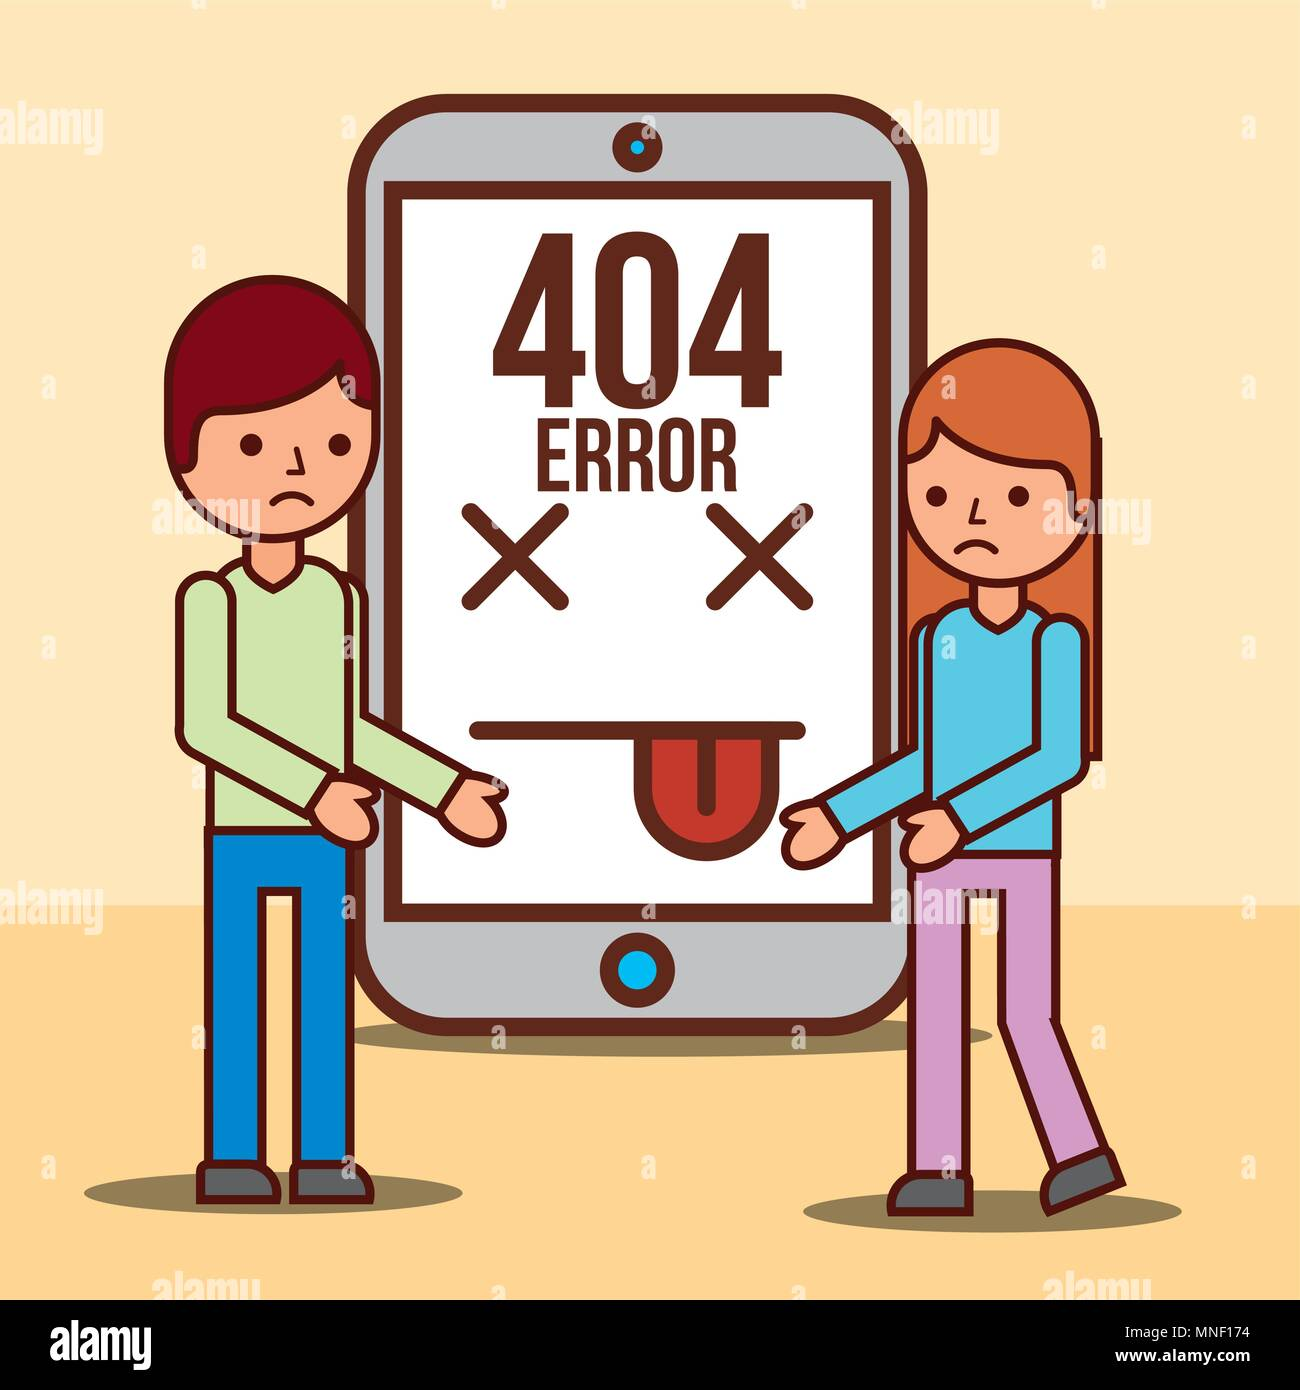 404 error page not found - Stock Image